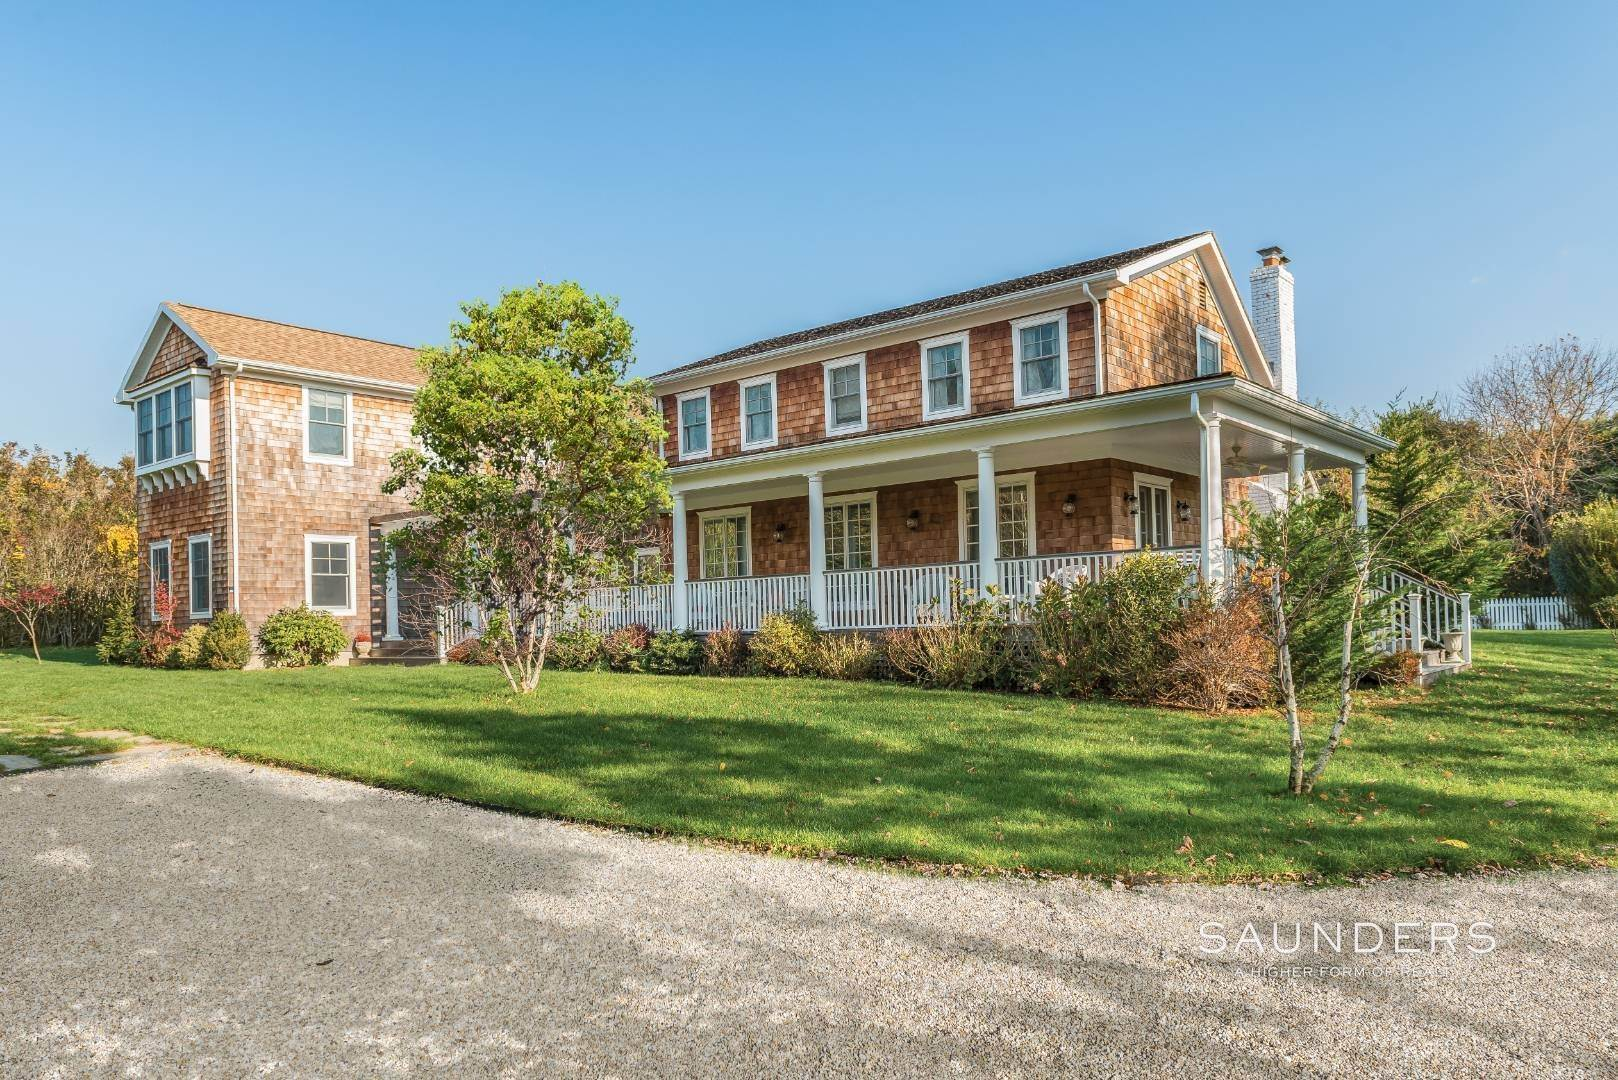 Single Family Homes for Sale at It's Better In Bridgehampton 441 Lumber Ln, Bridgehampton, Southampton Town, NY 11932